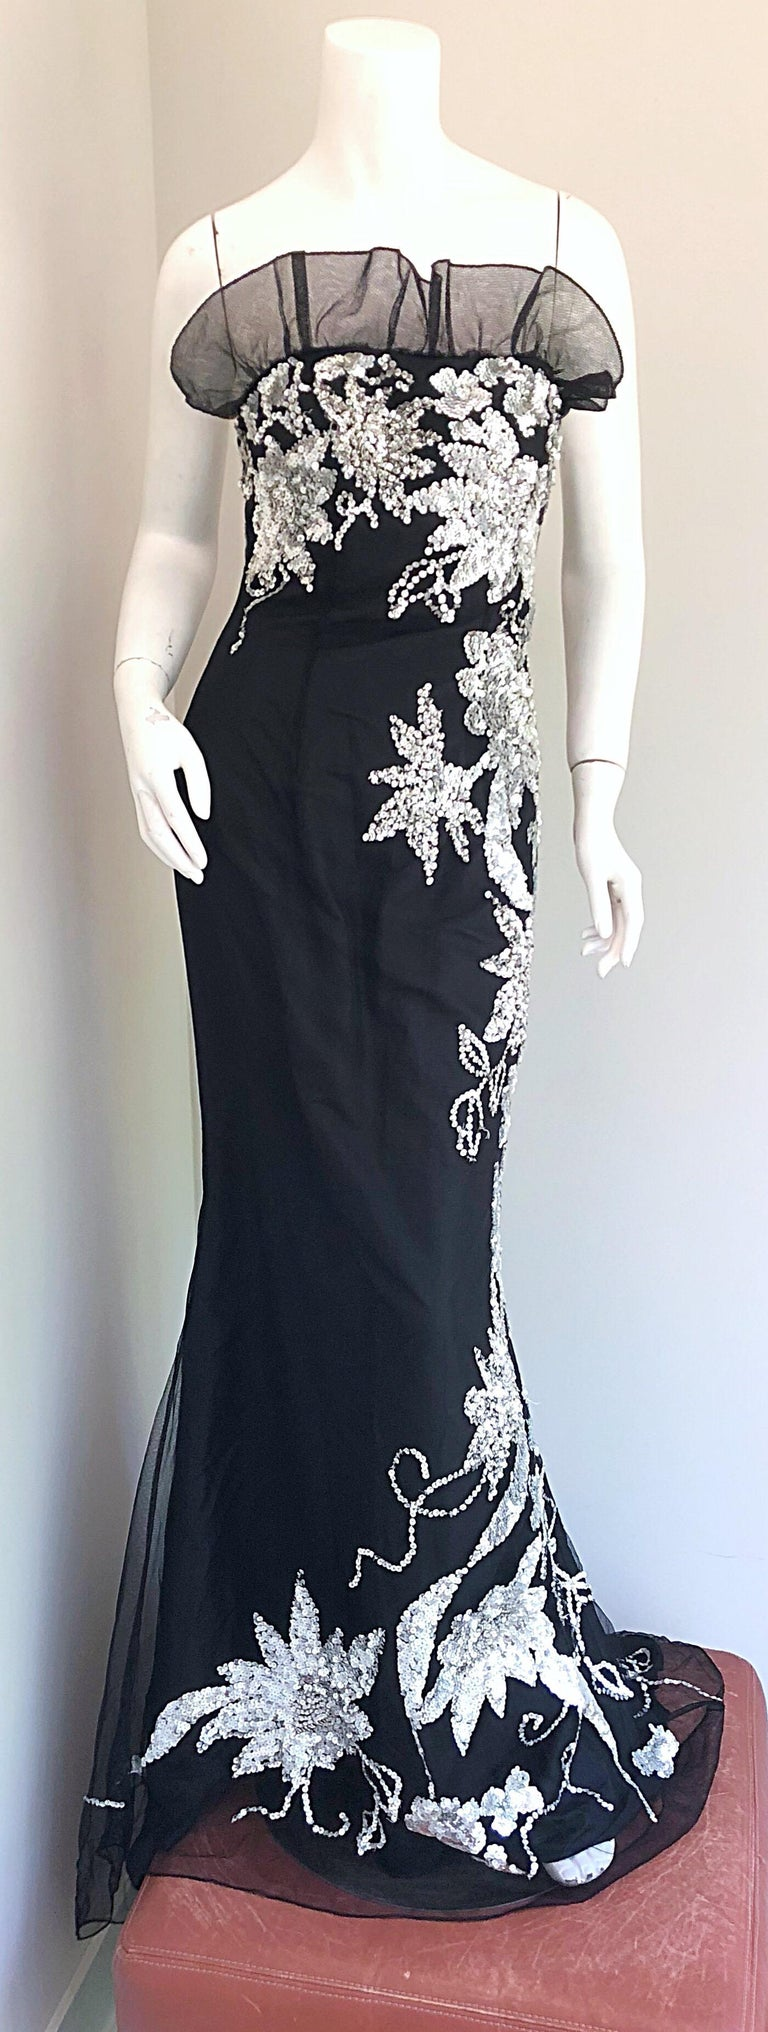 Gorgeous early 1990s black and silver tulle and sequined full length strapless evening dress! Features black taffeta with a tulle overlay. Thousands of hand-sewn silver sequins throughout. Ruffled neckline above the bust. Dramatic train in the back